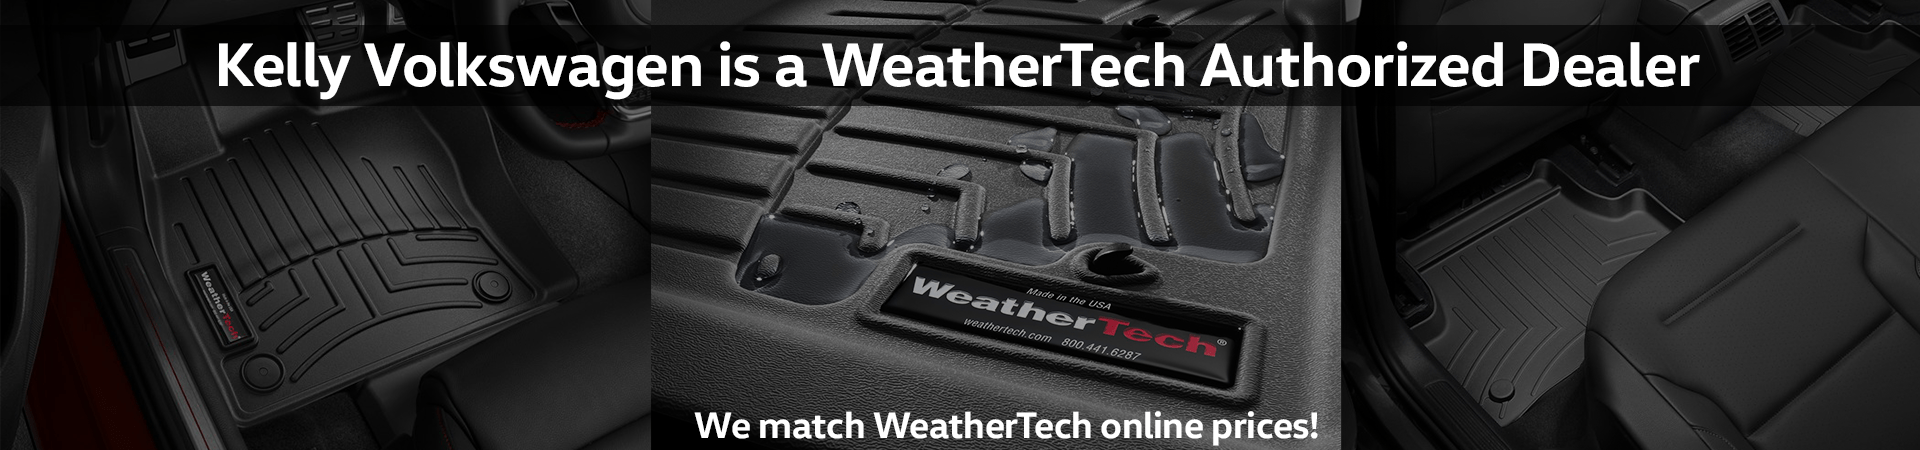 Weathetech Authorized Dealer